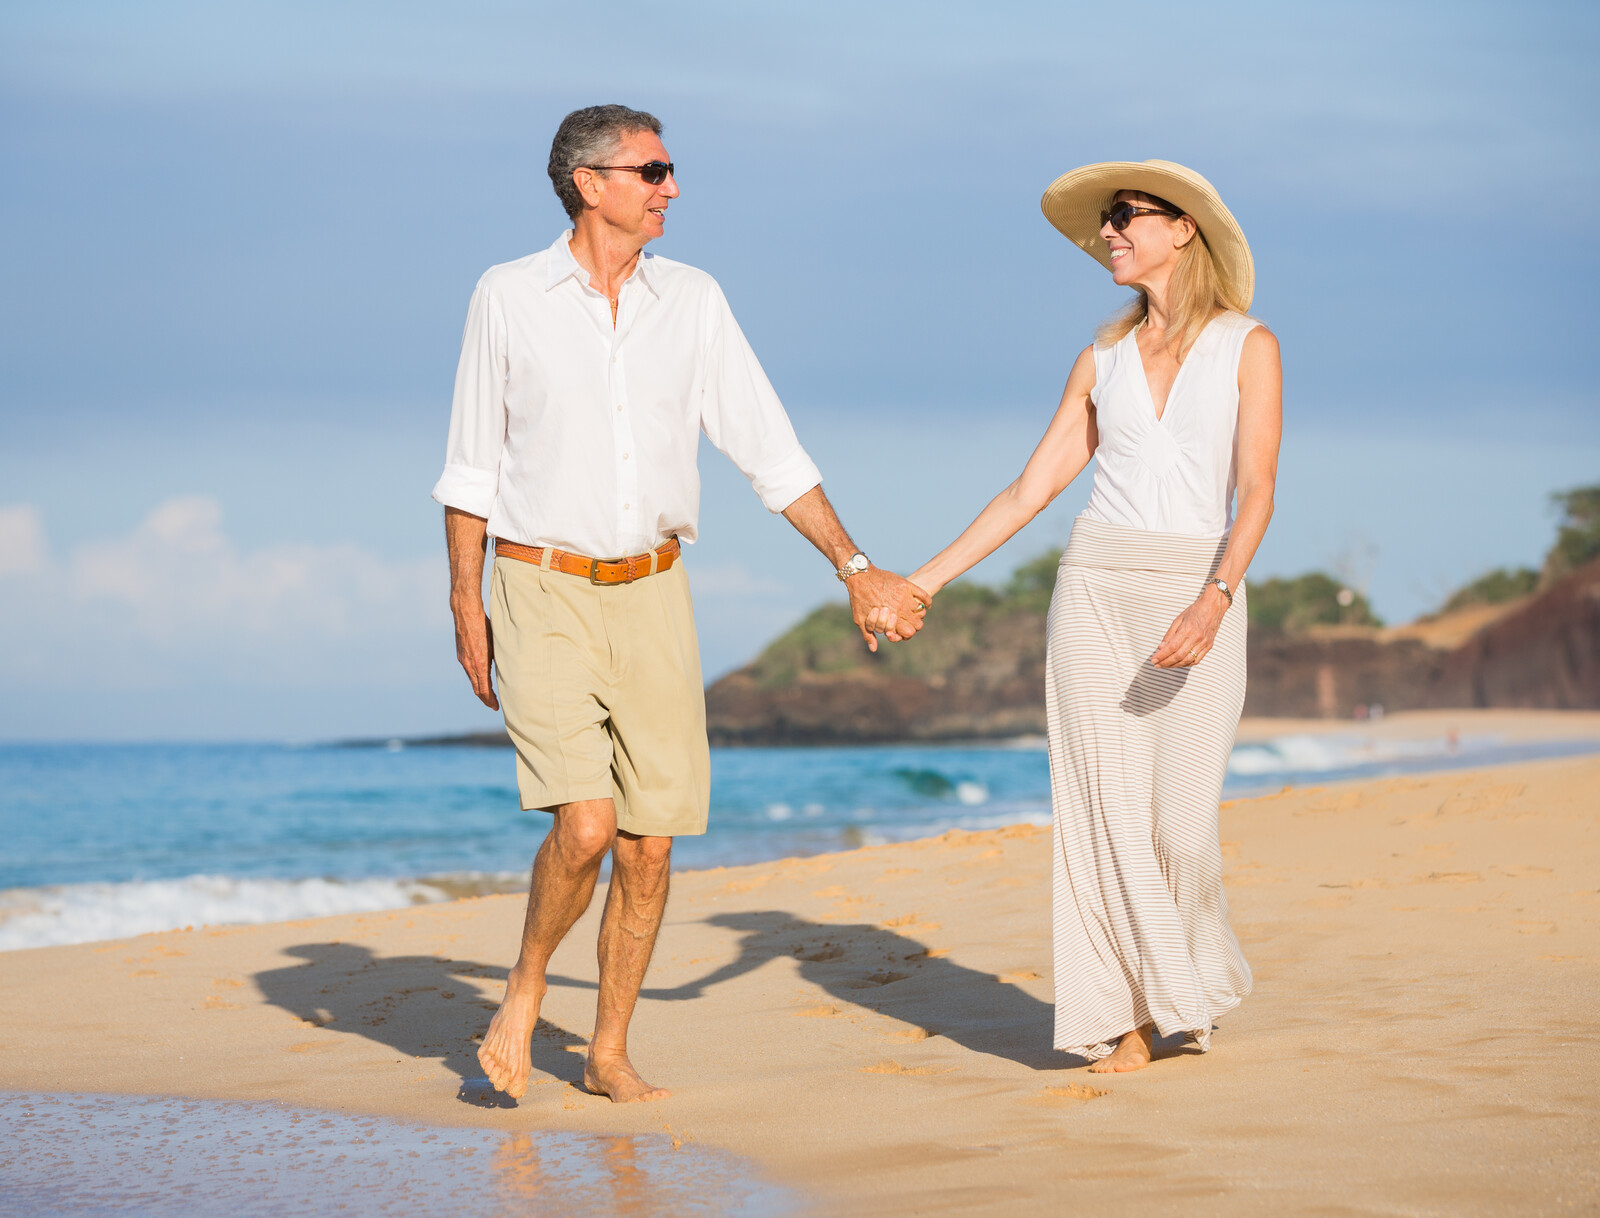 Best All Inclusive Adults-Only Resorts - Happy senior couple holding hands on a Caribbean beach with the ocean in the background.  The woman is wearing sunglasses and a hat the man is wearing sunglasses, the two are looking at one another